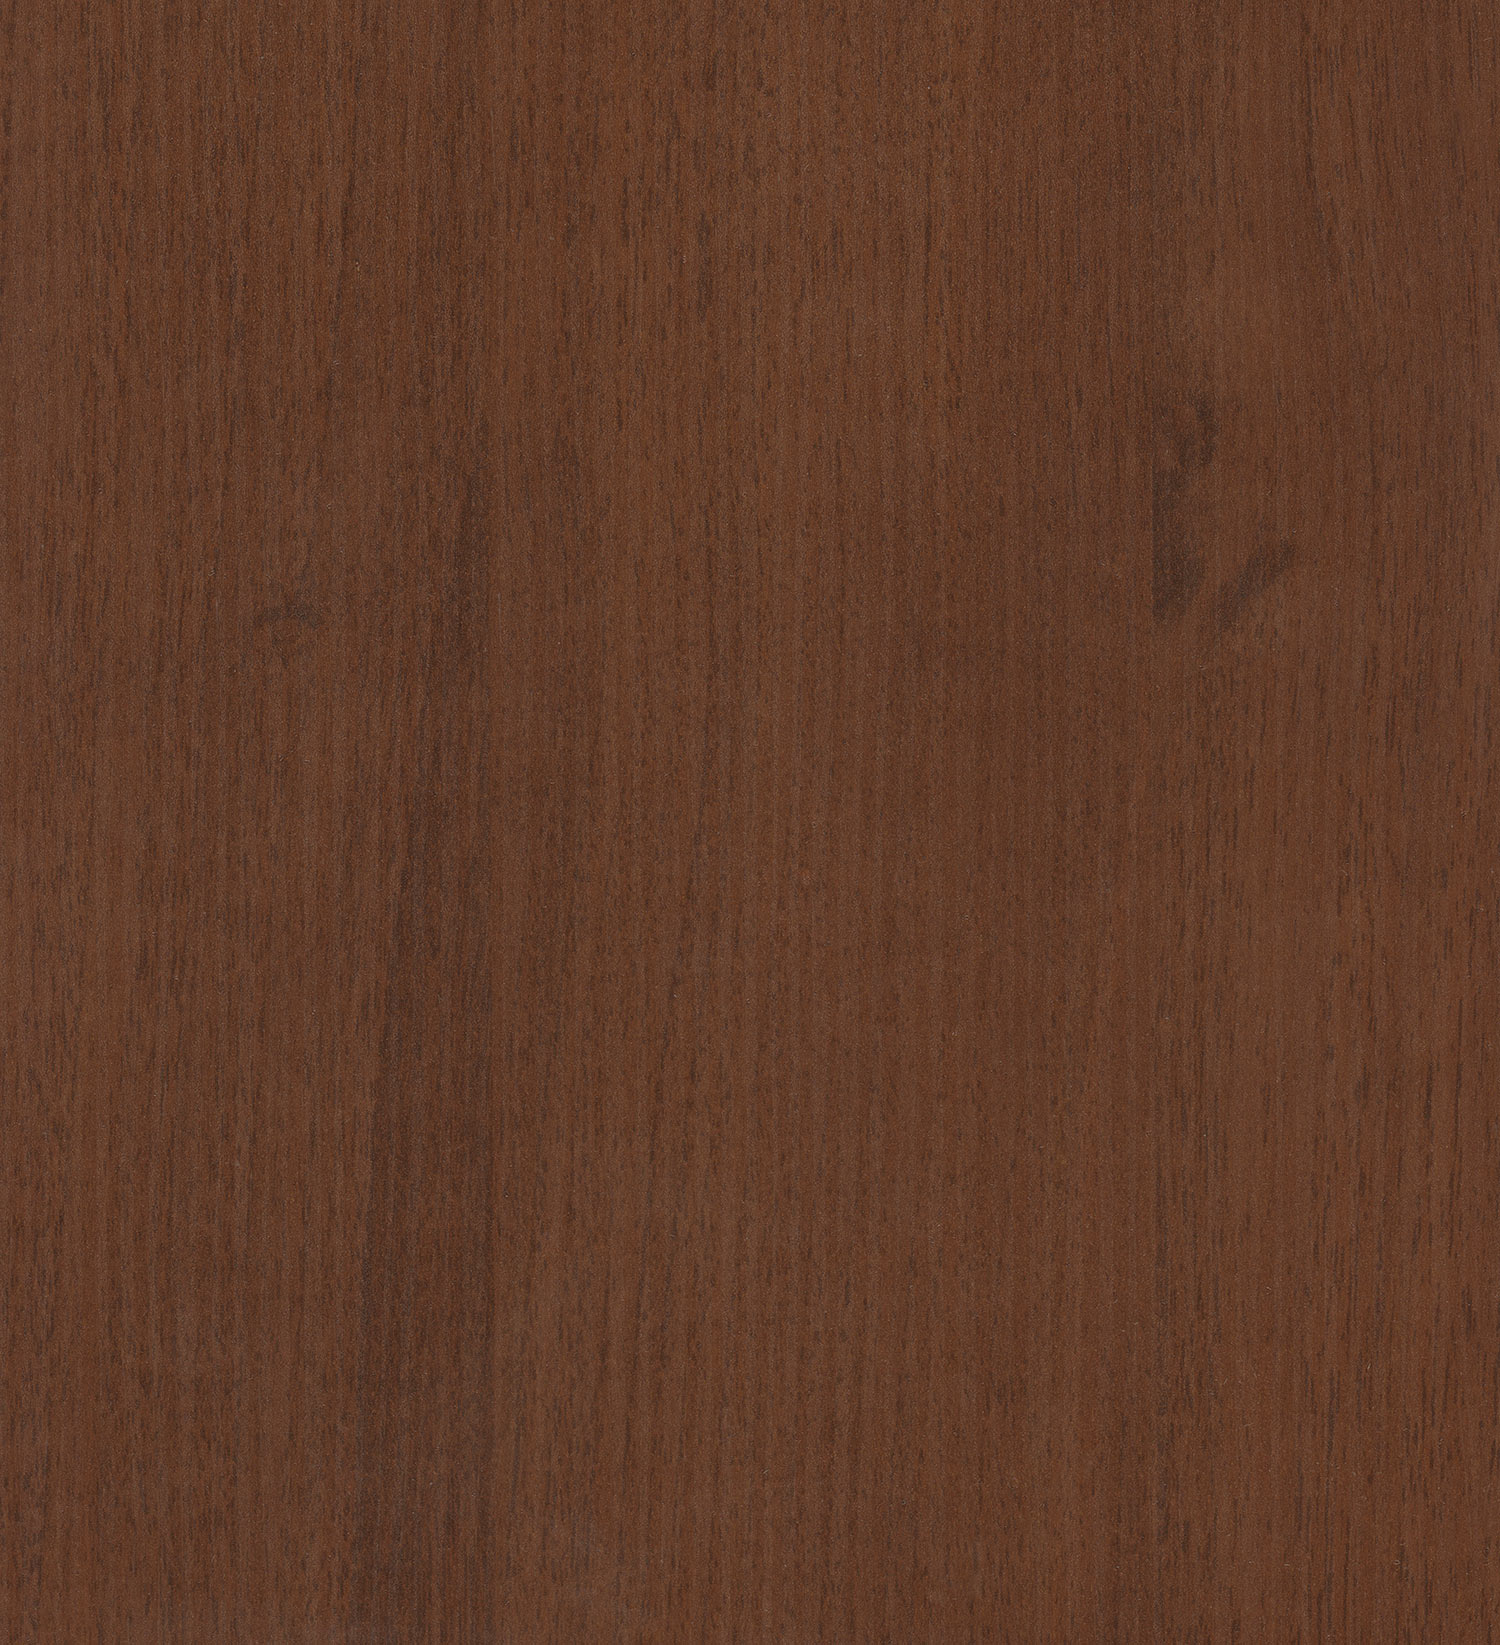 3D Painted Fiberboard Chestnut / Clear 10